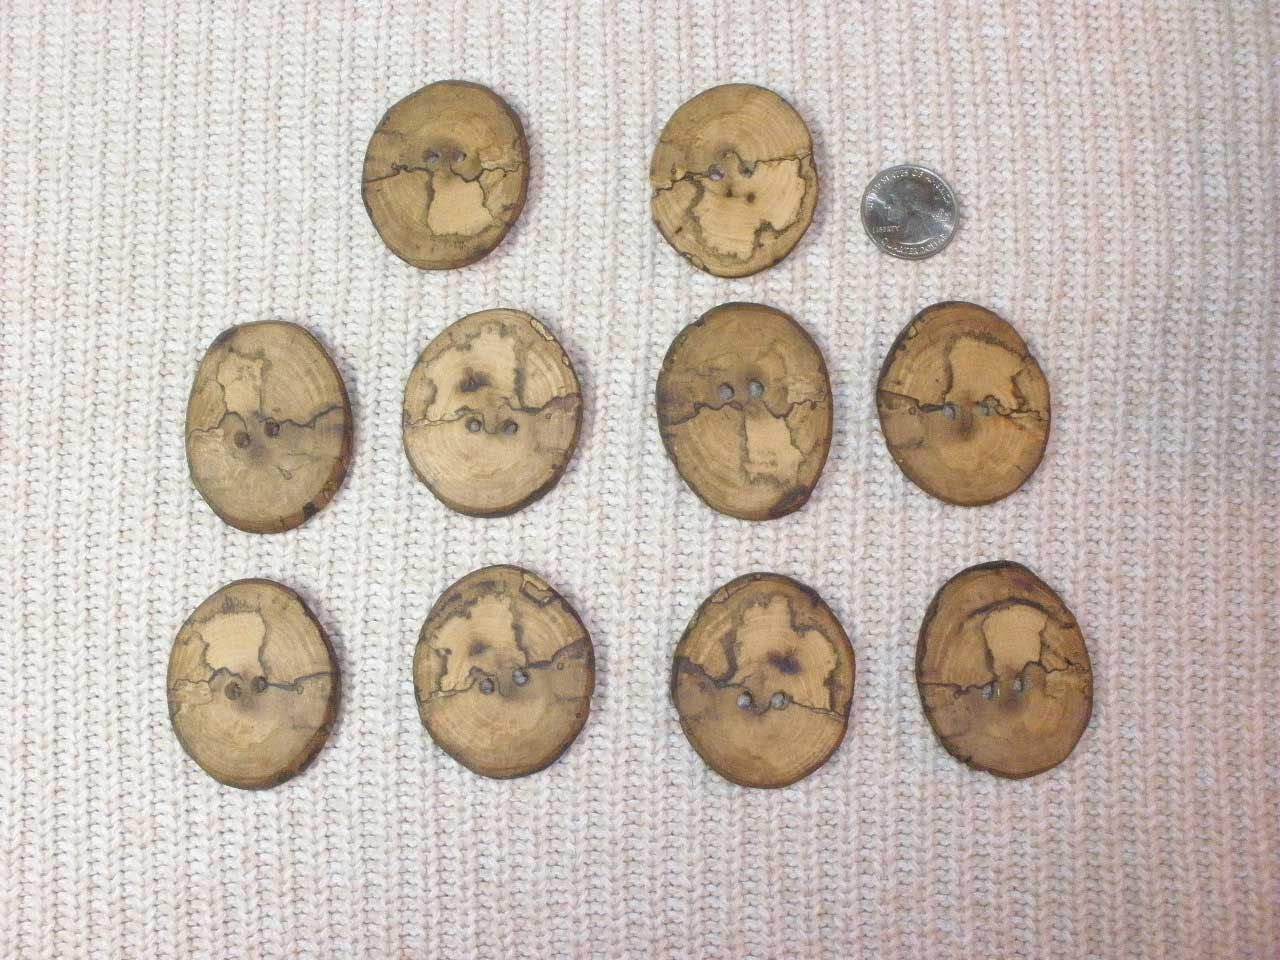 Large spalted oak wood tree branch buttons